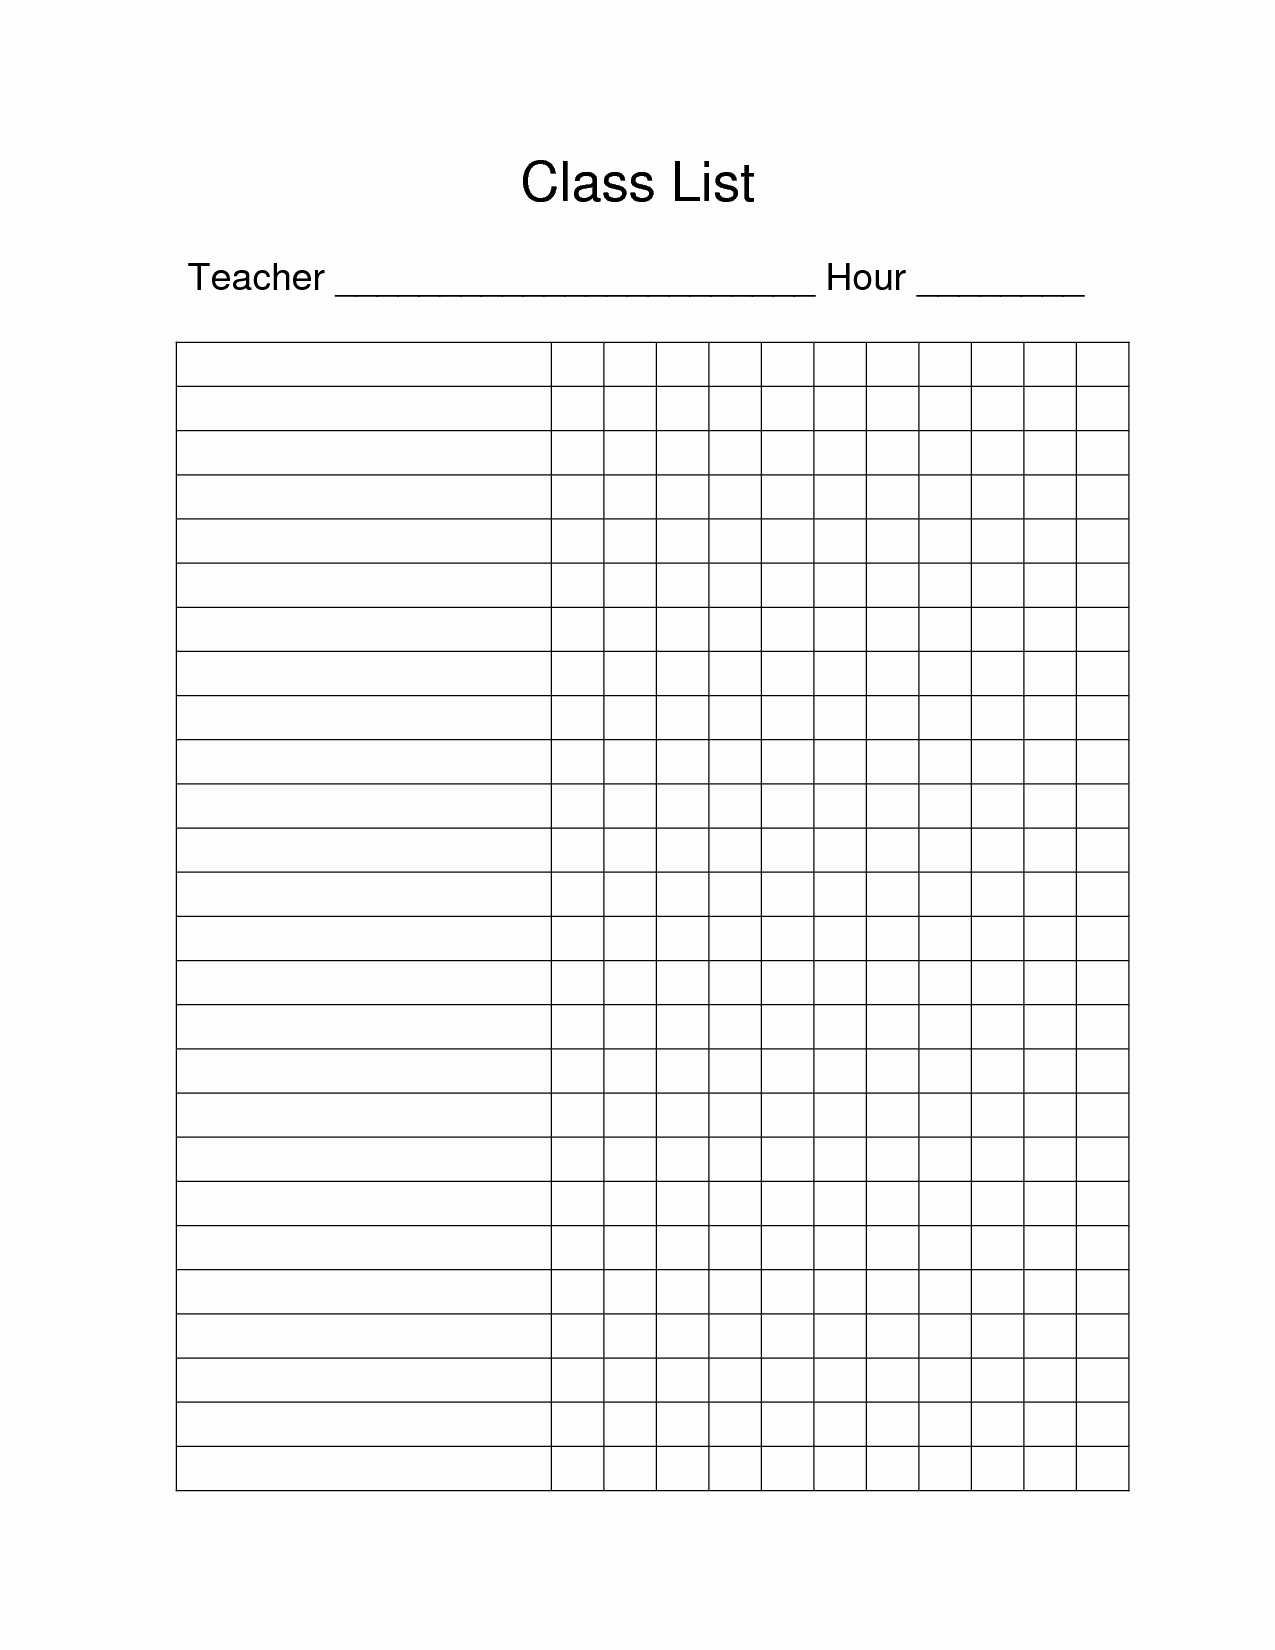 Free Printable Class Roster Template Fresh 7 Best Of Class List Blank Printable Blank Class